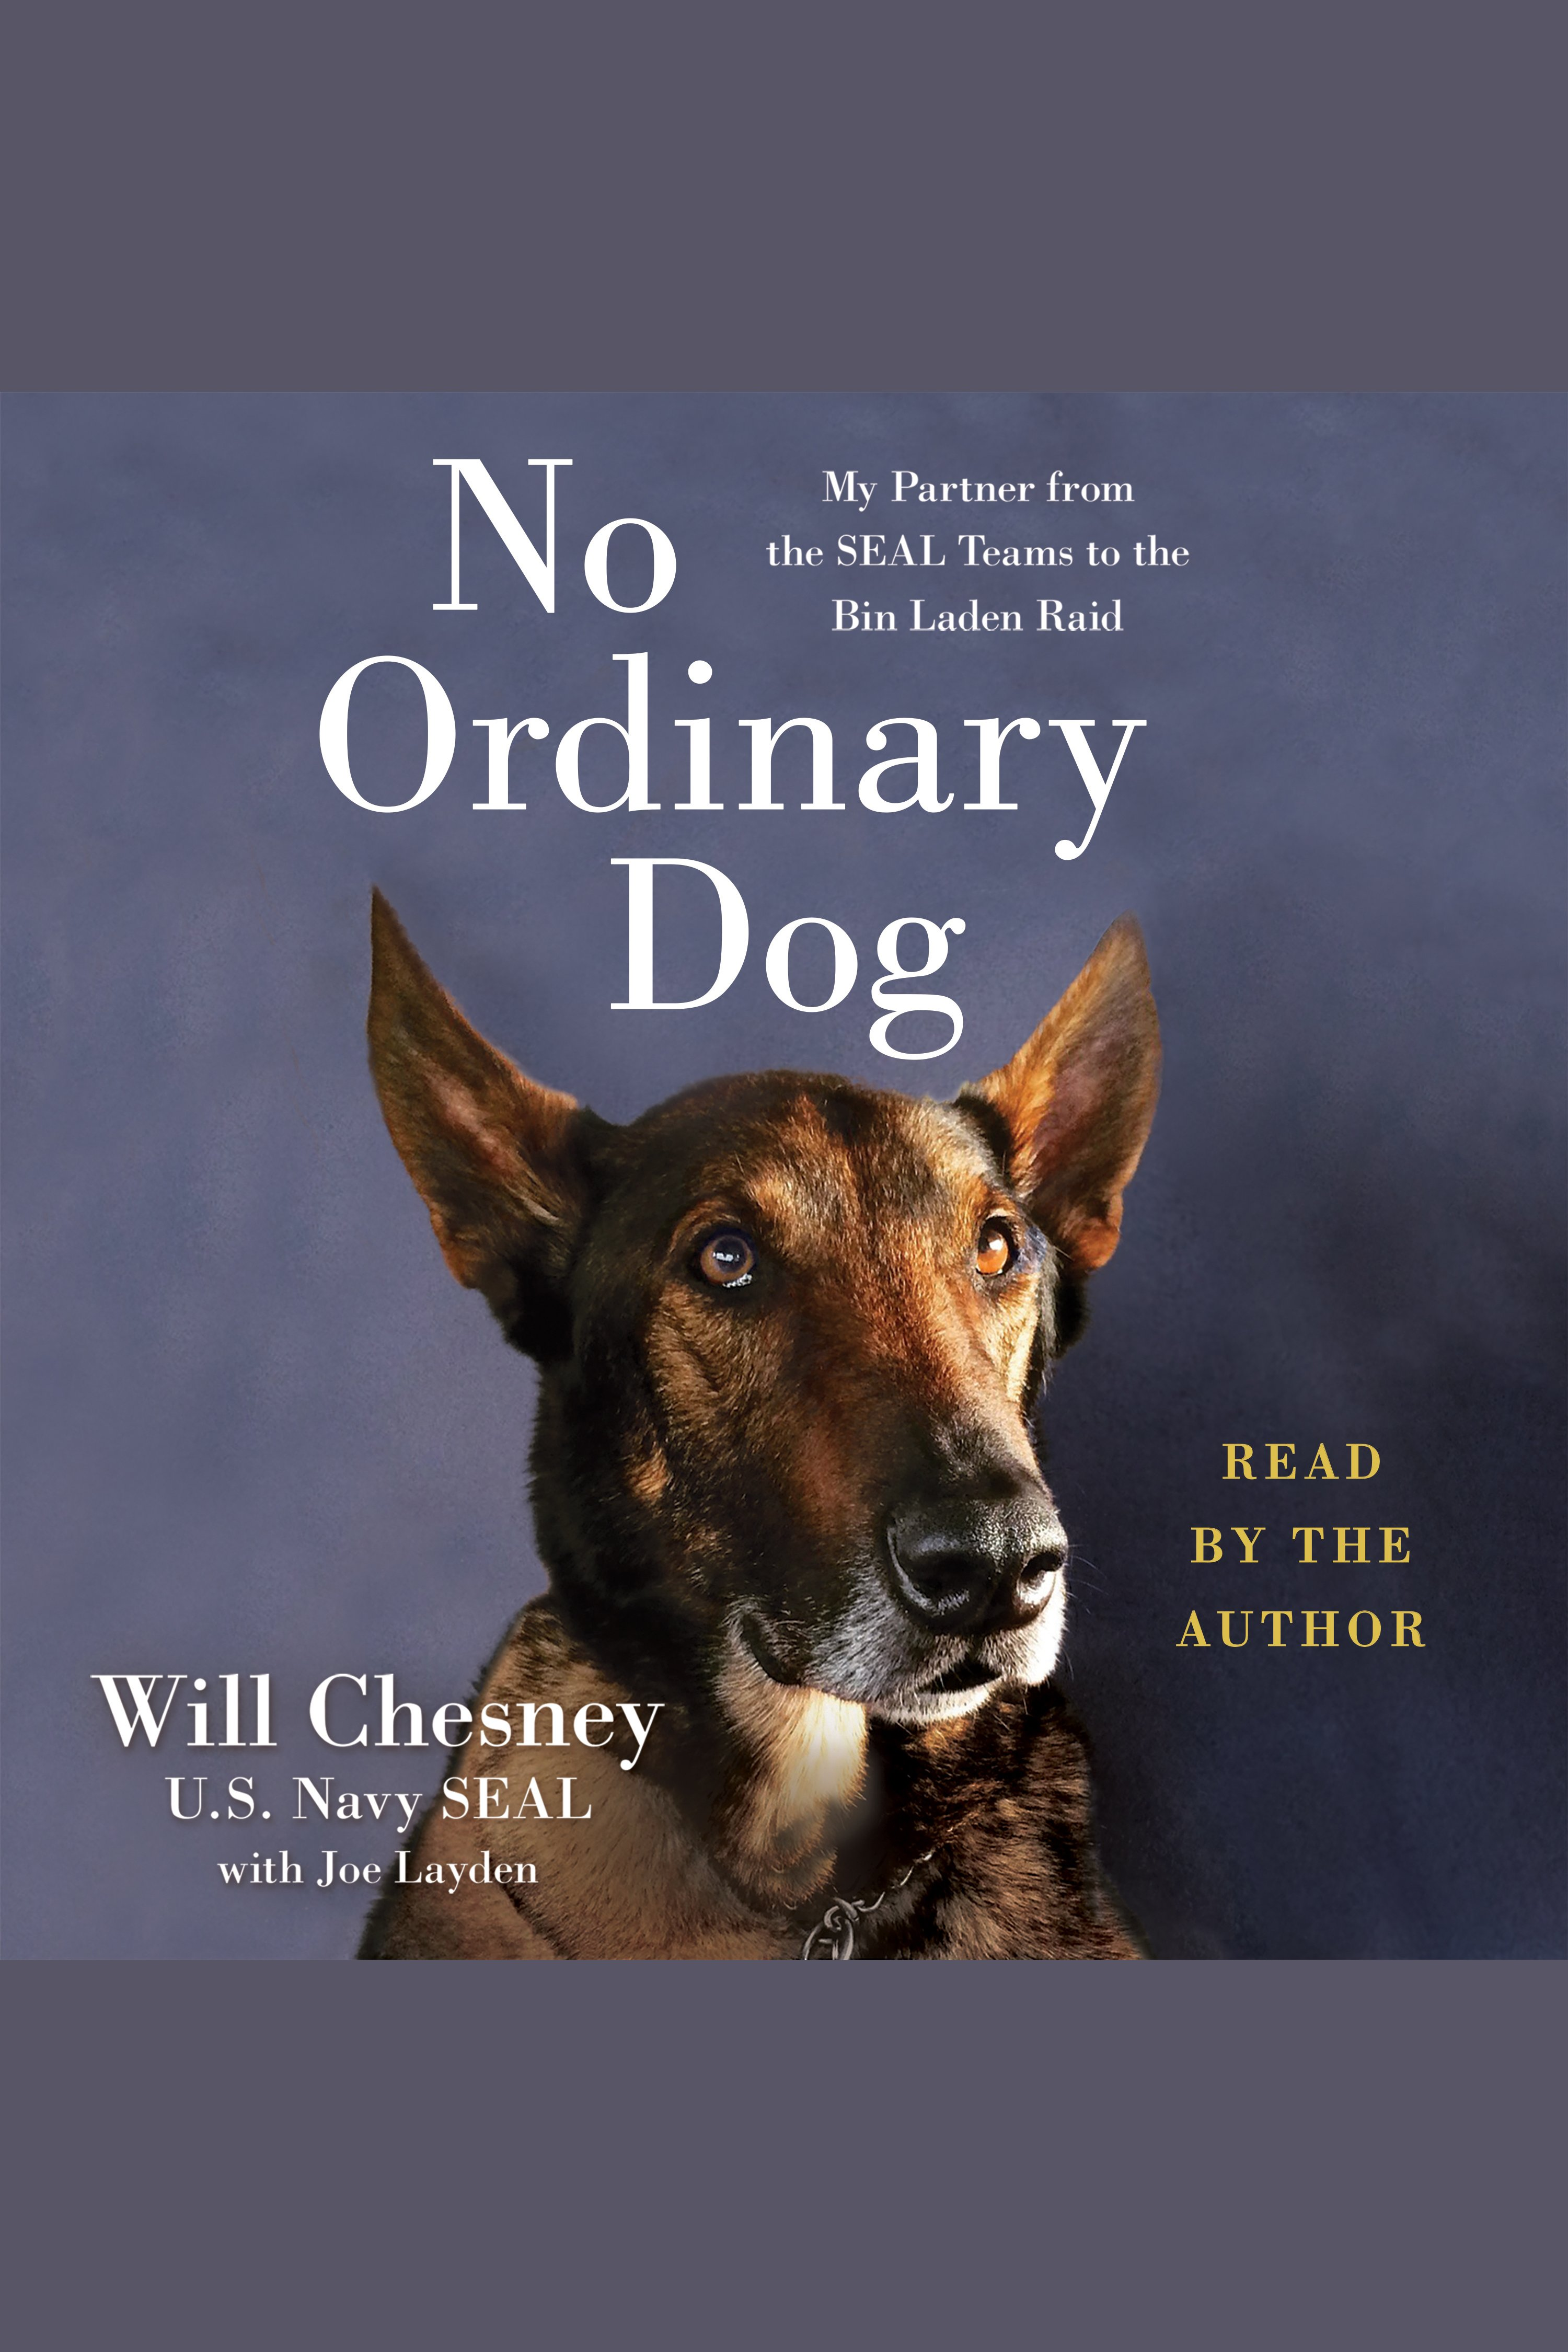 No Ordinary Dog [electronic resource] : My Partner from the SEAL Teams to the Bin Laden Raid